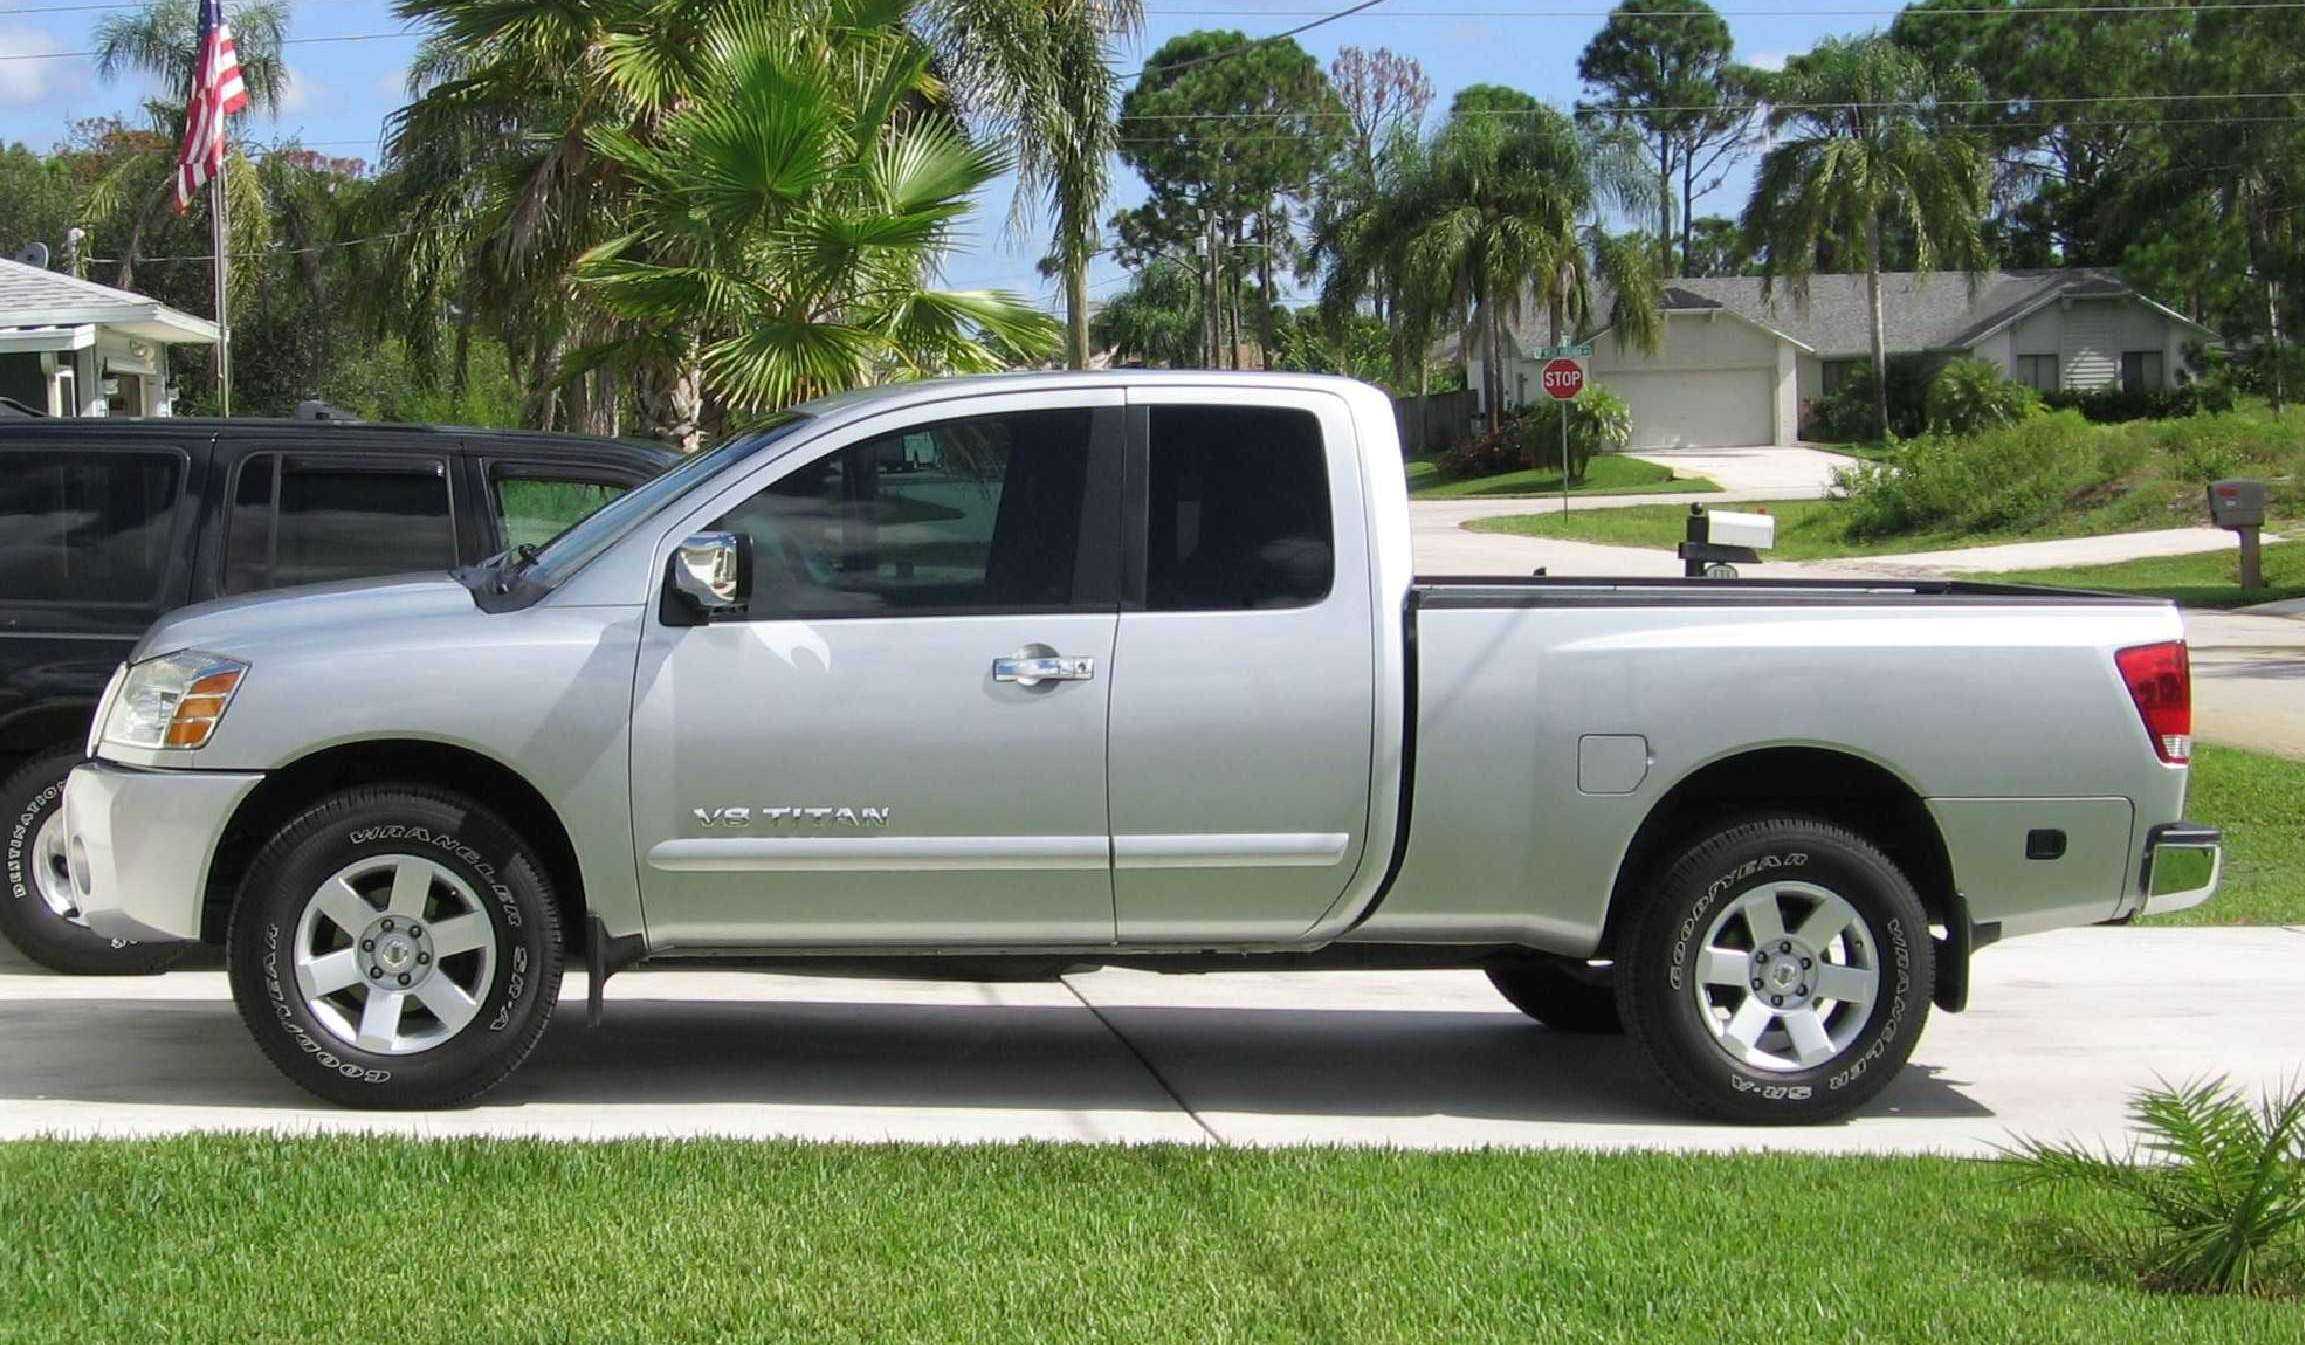 2005 nissan titan information and photos zombiedrive. Black Bedroom Furniture Sets. Home Design Ideas